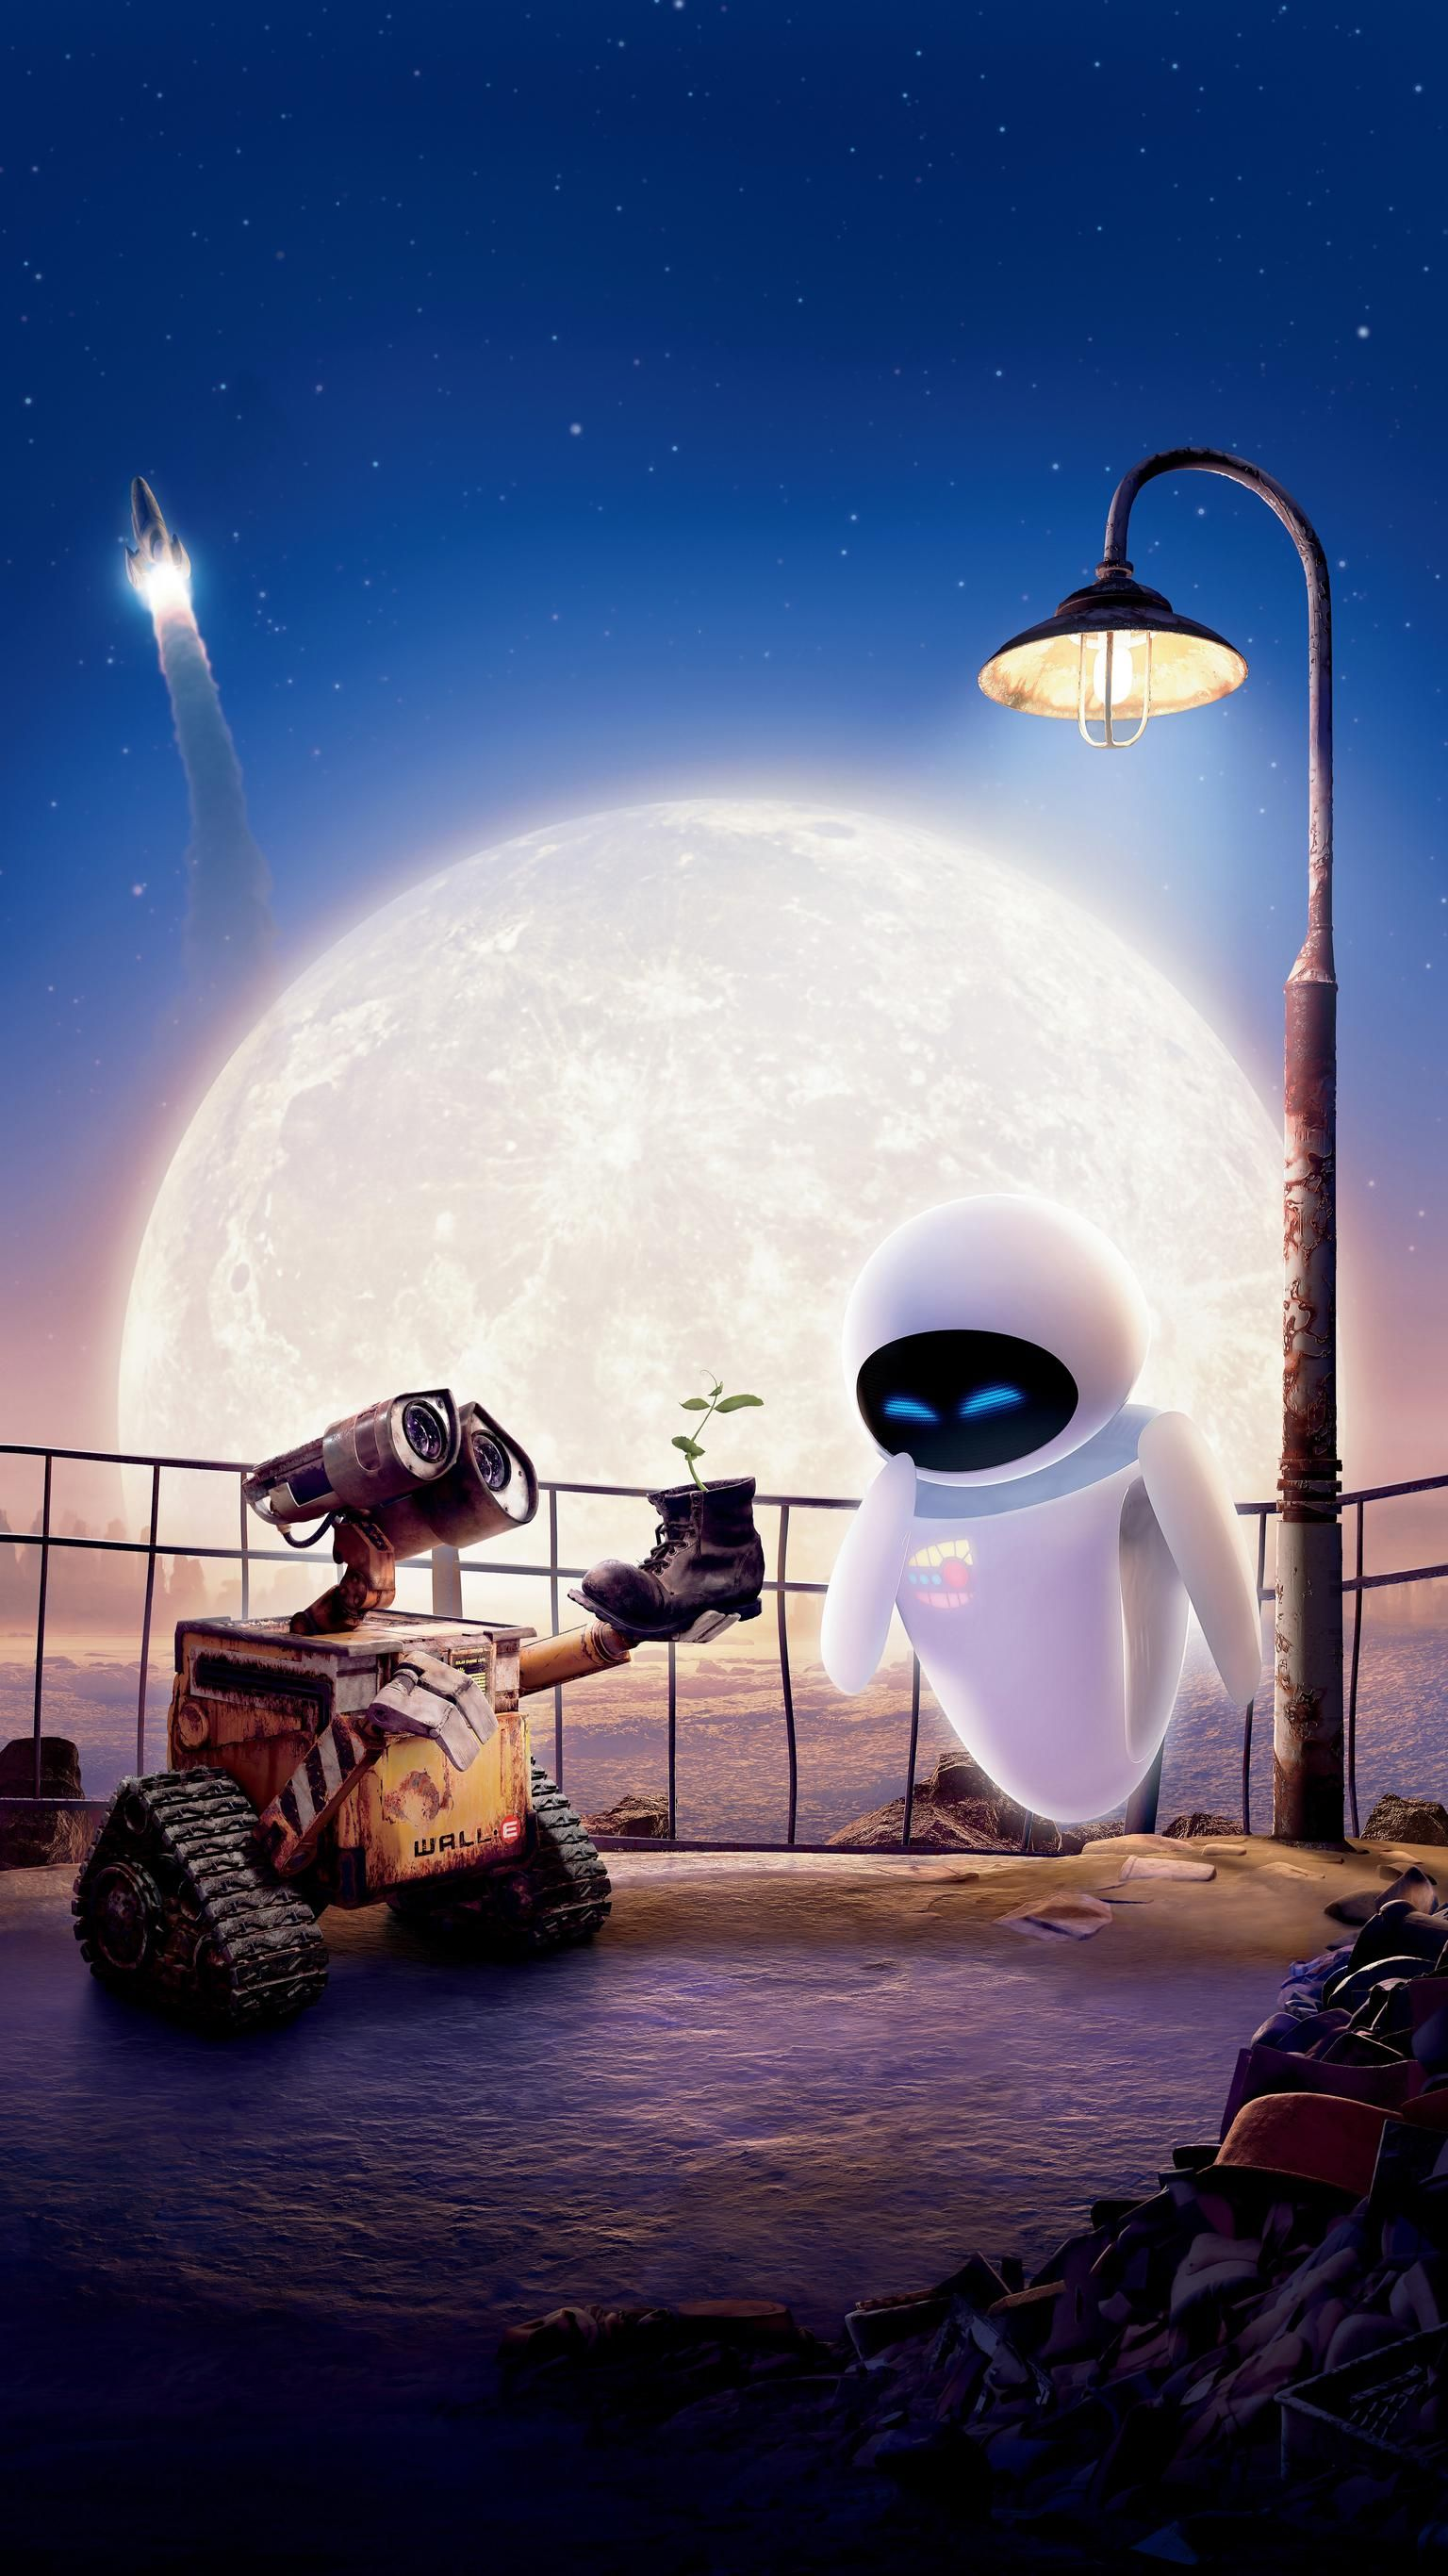 WALL·E (2008) Phone Wallpaper